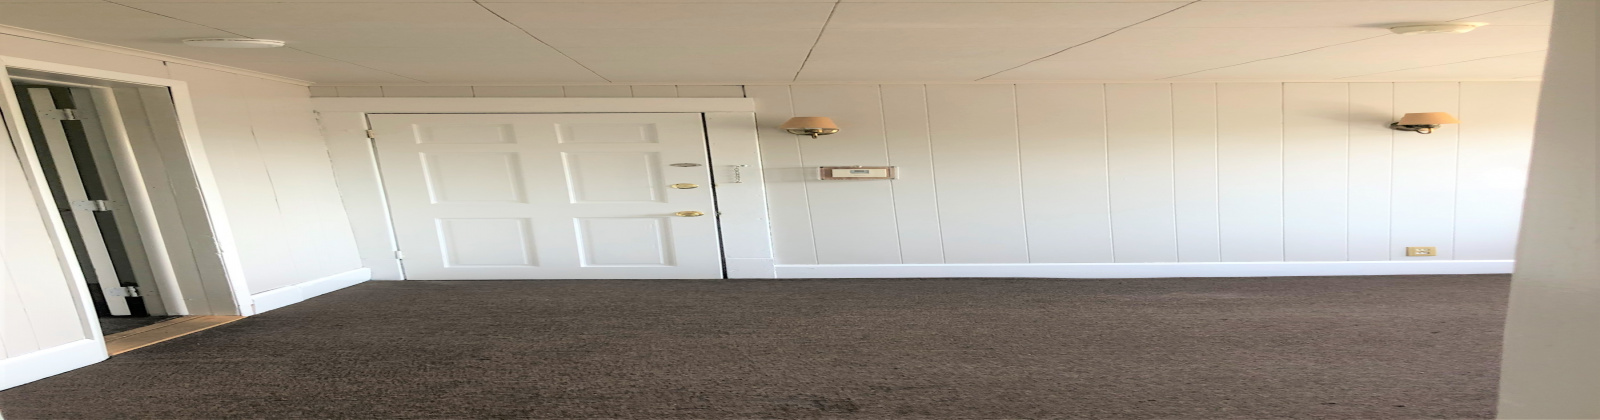 1 N May Avenue APT 4 Athens, Ohio, 2 Bedrooms Bedrooms, ,1 BathroomBathrooms,Apartment,For Rent,N May,1012